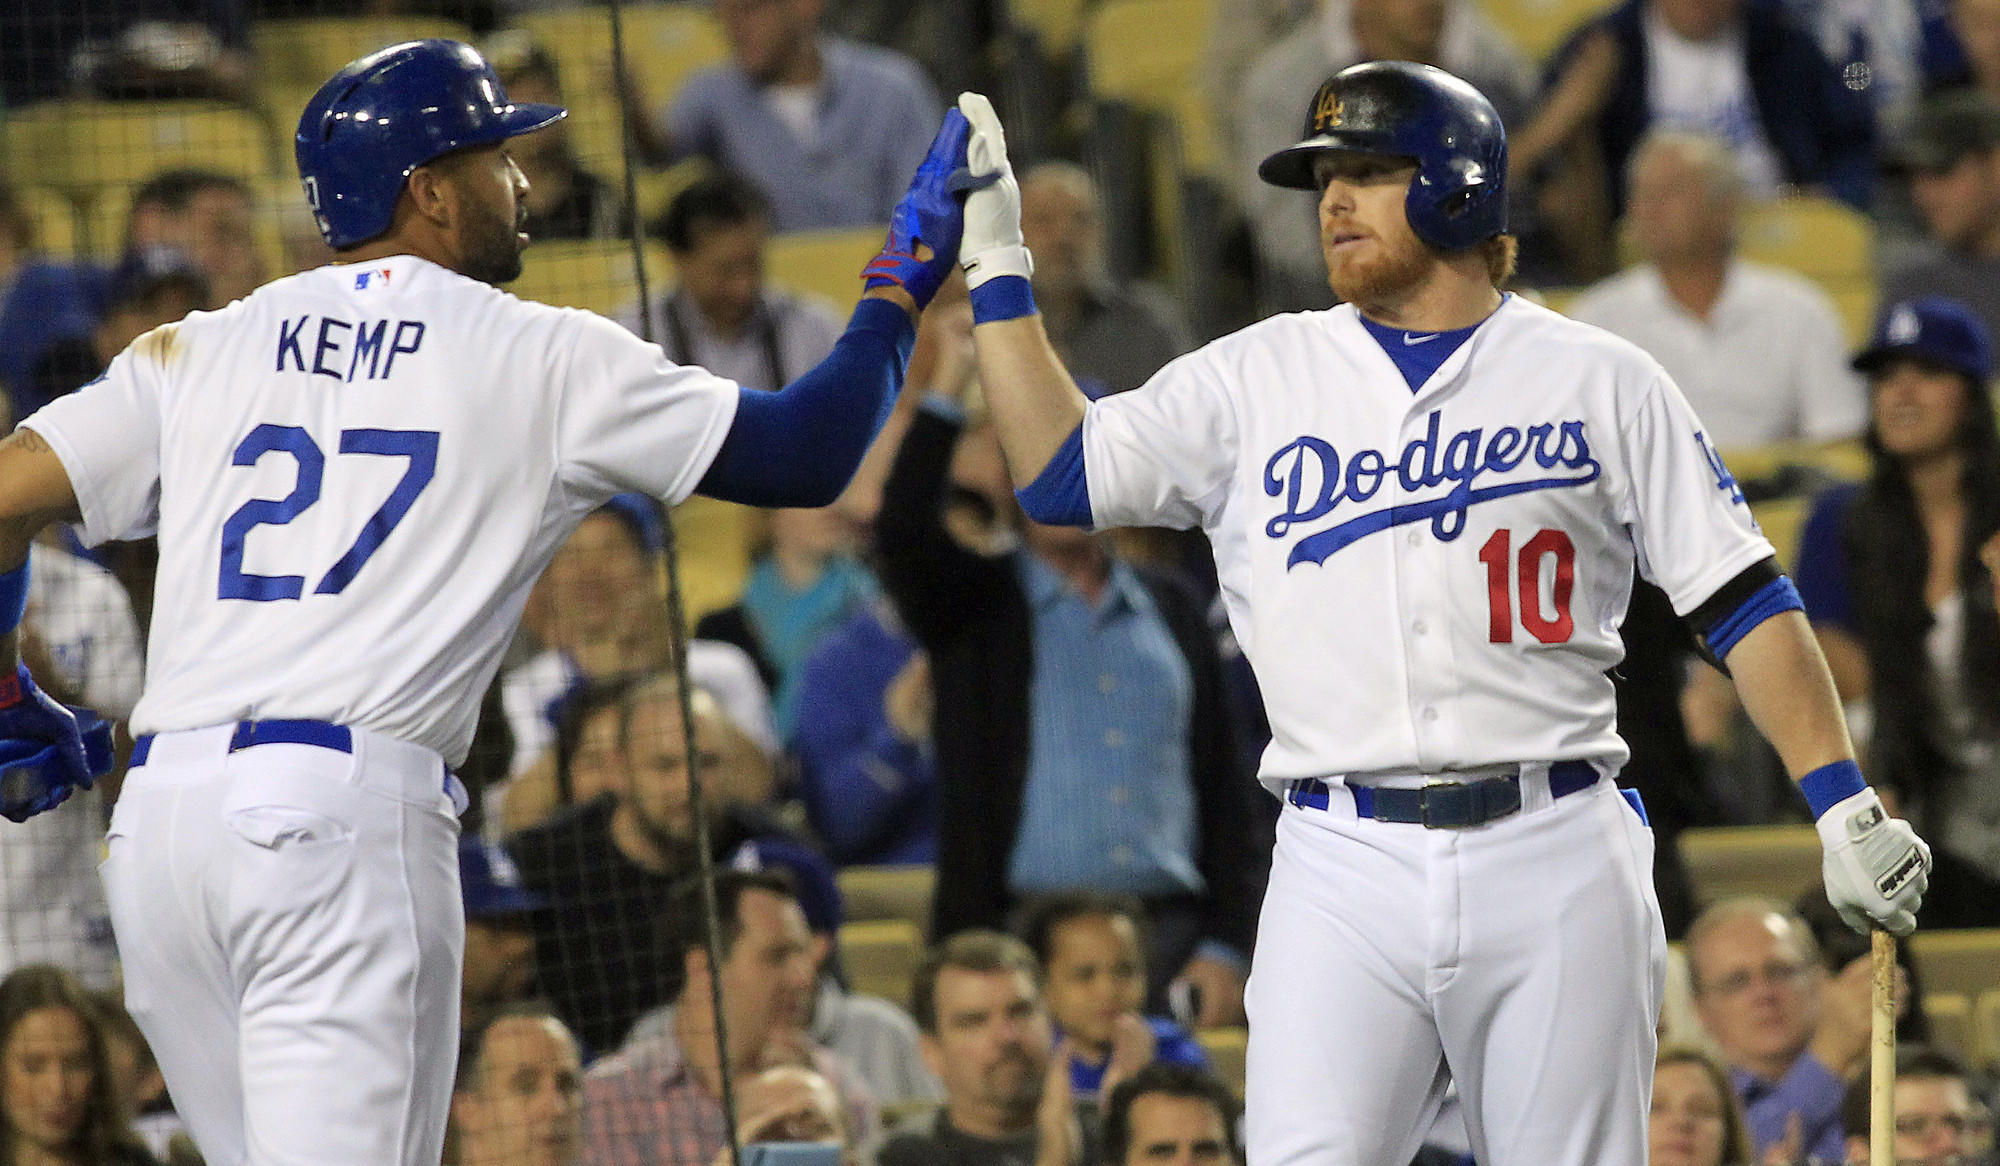 Dodgers center fielder Matt Kemp, left, is congratulated by second baseman Justin Turner after scoring on a sacrifice fly by Juan Uribe (not pictured) during the second inning of the Dodgers' 5-2 win over the Philadelphia Phillies on Wednesday.